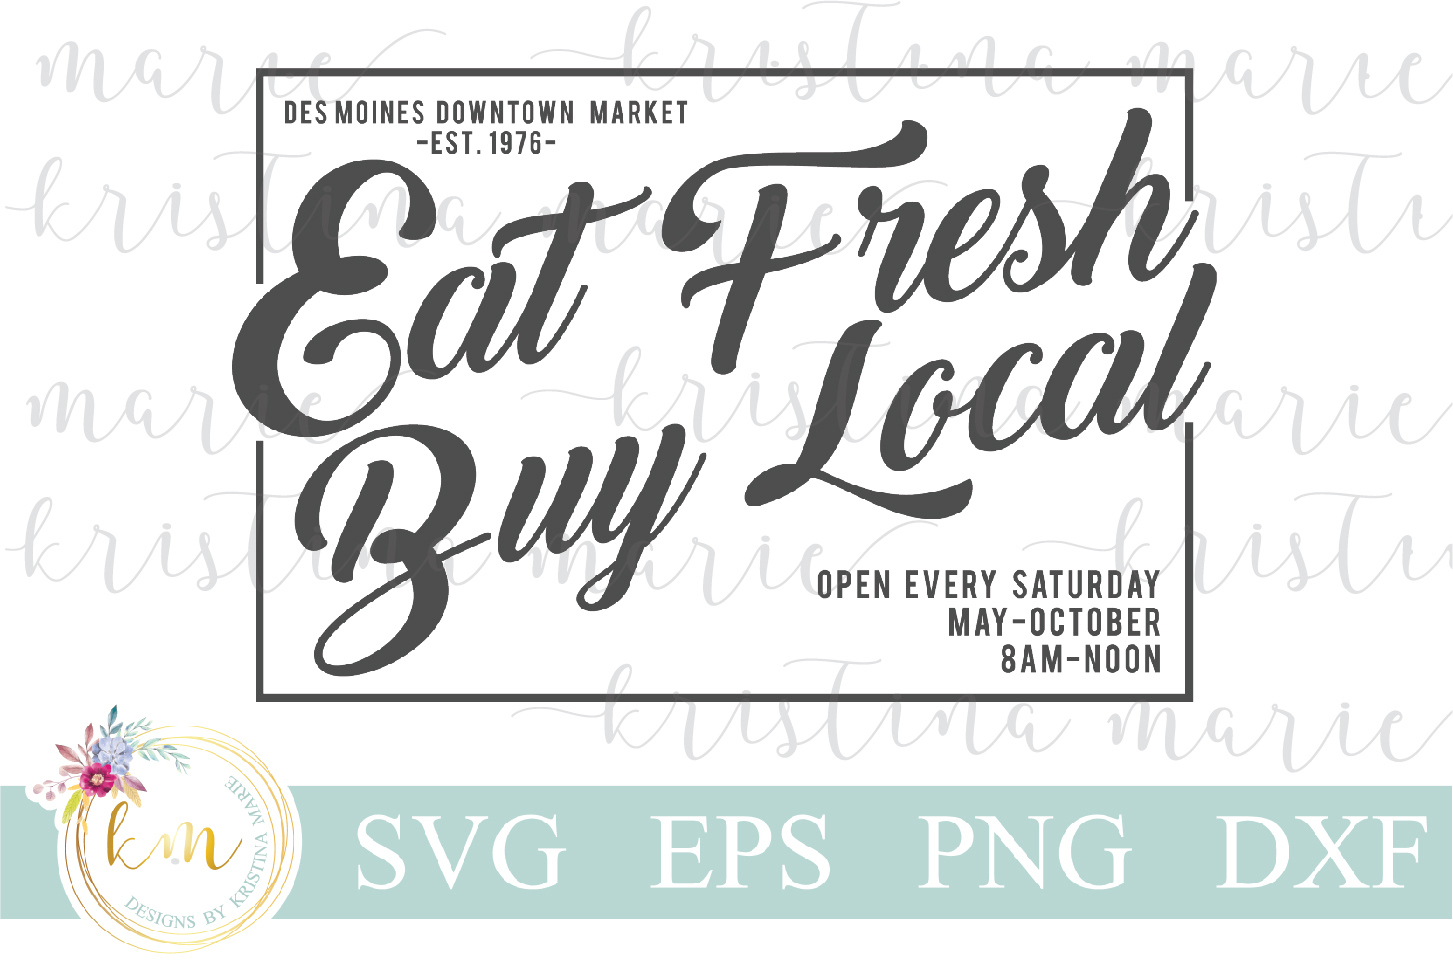 Download Free Eat Fresh Graphic By Kristina Marie Design Creative Fabrica for Cricut Explore, Silhouette and other cutting machines.